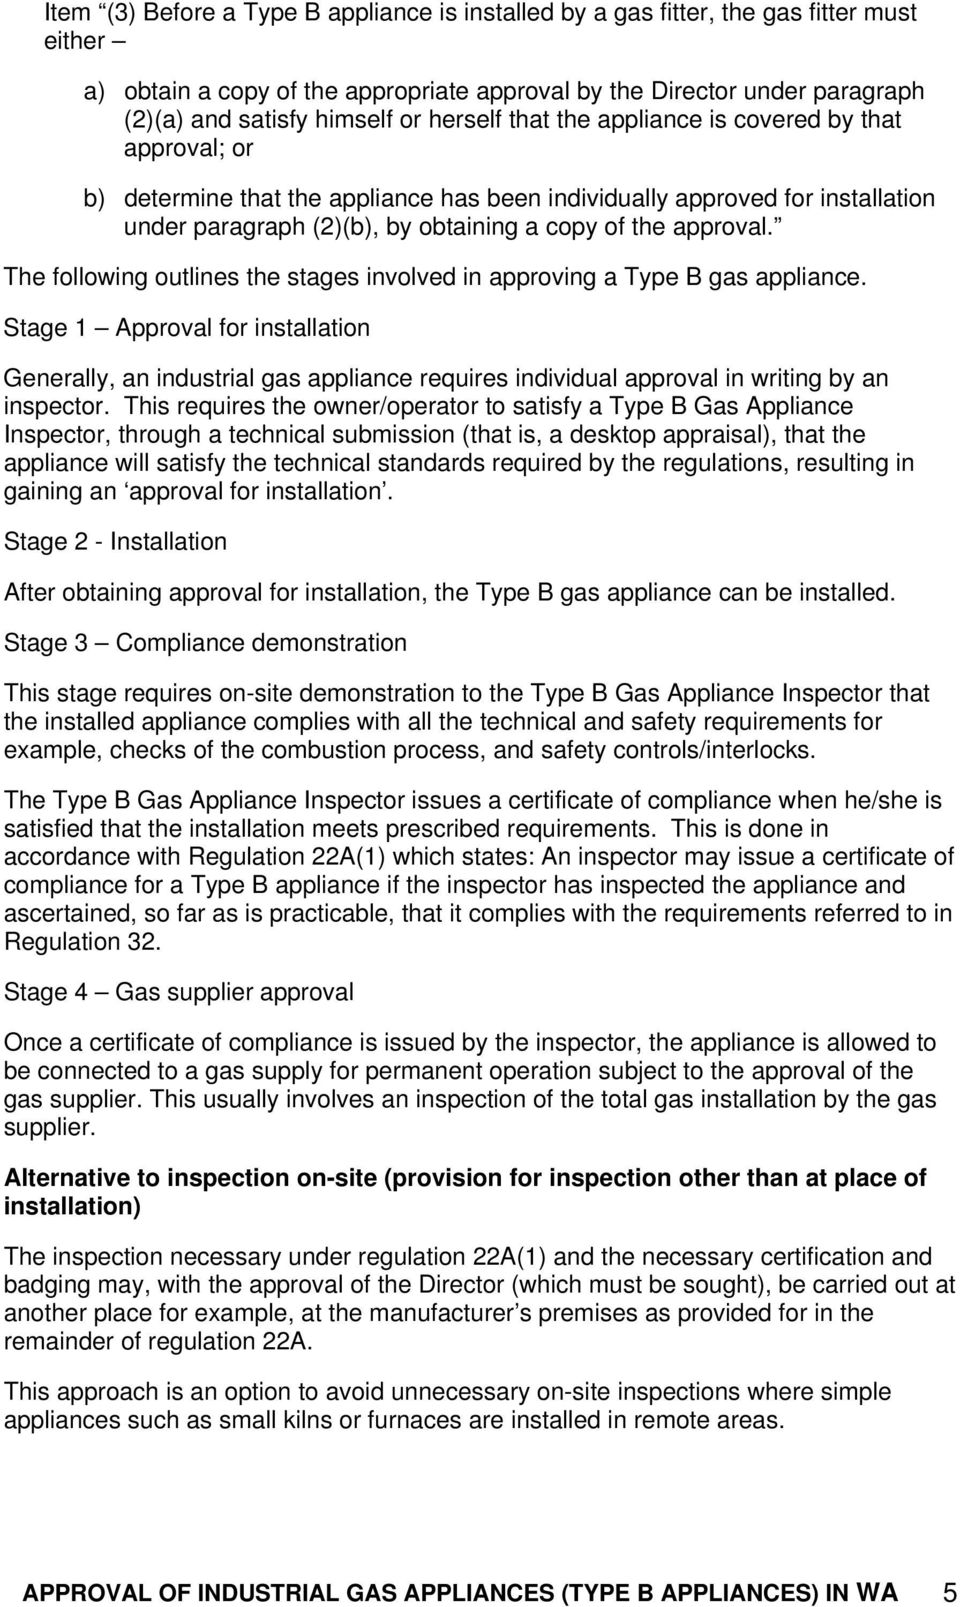 The following outlines the stages involved in approving a Type B gas appliance.